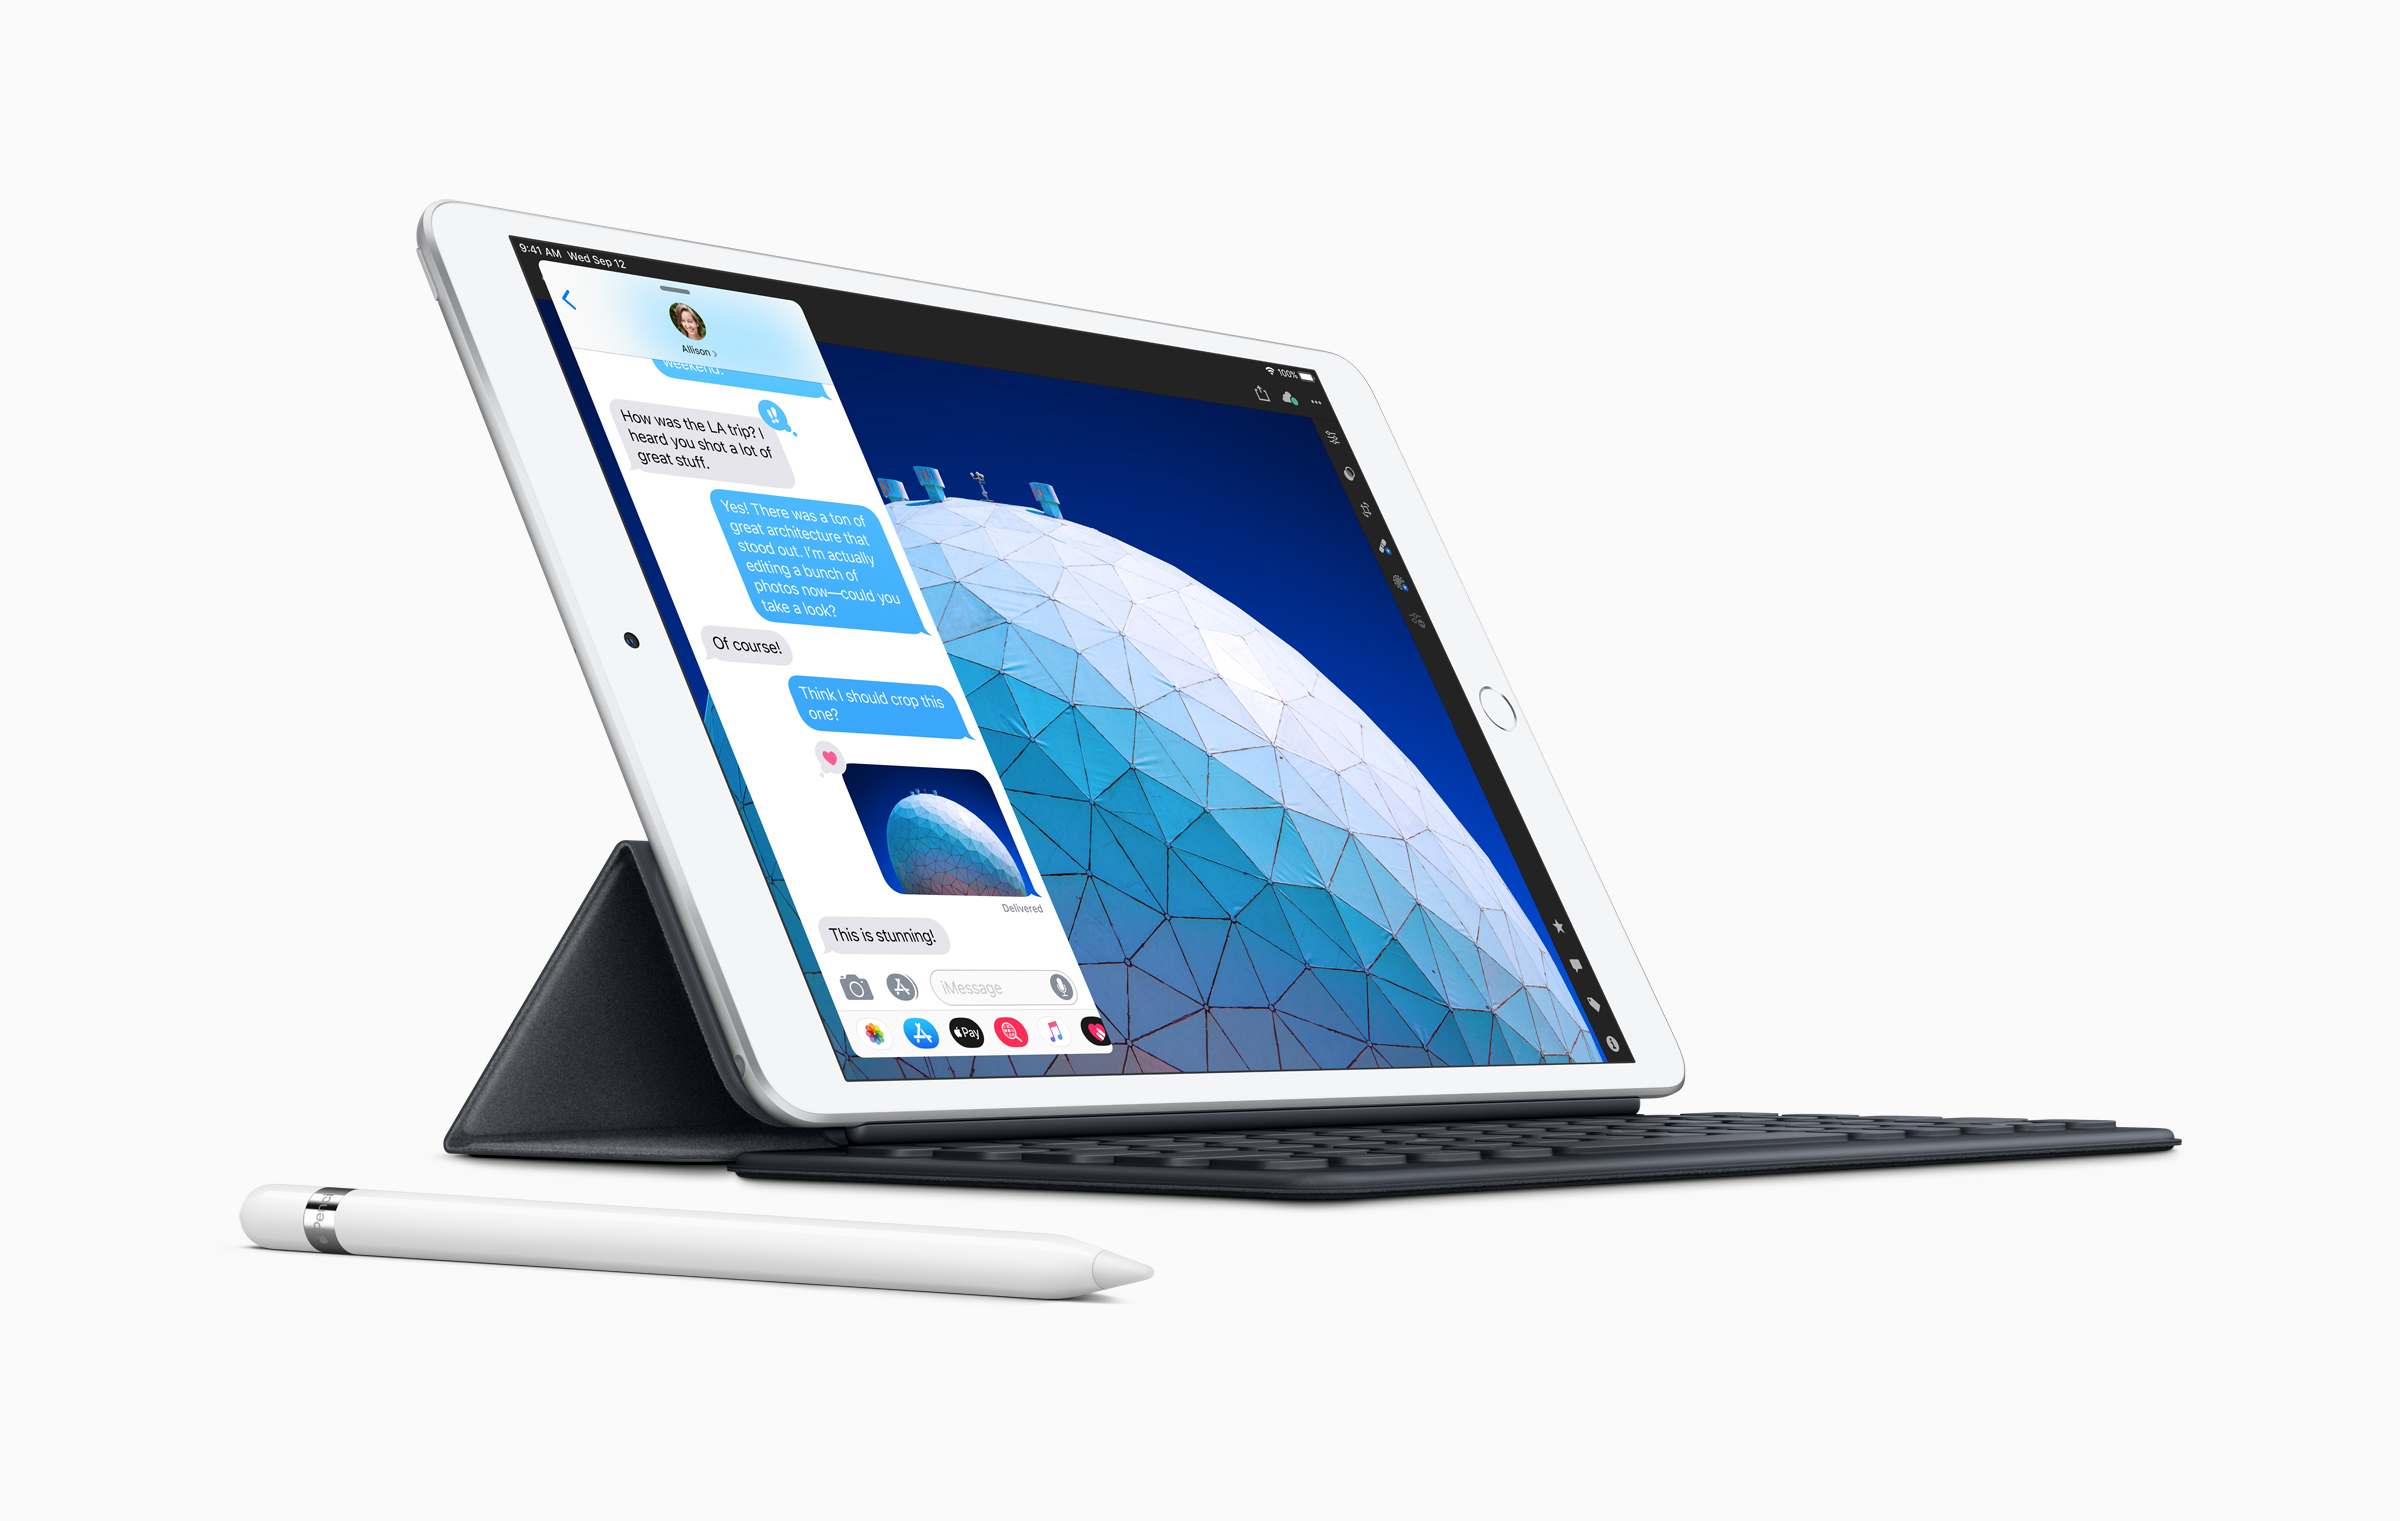 iPad Air with Smartkeyboard and Apple Pencil